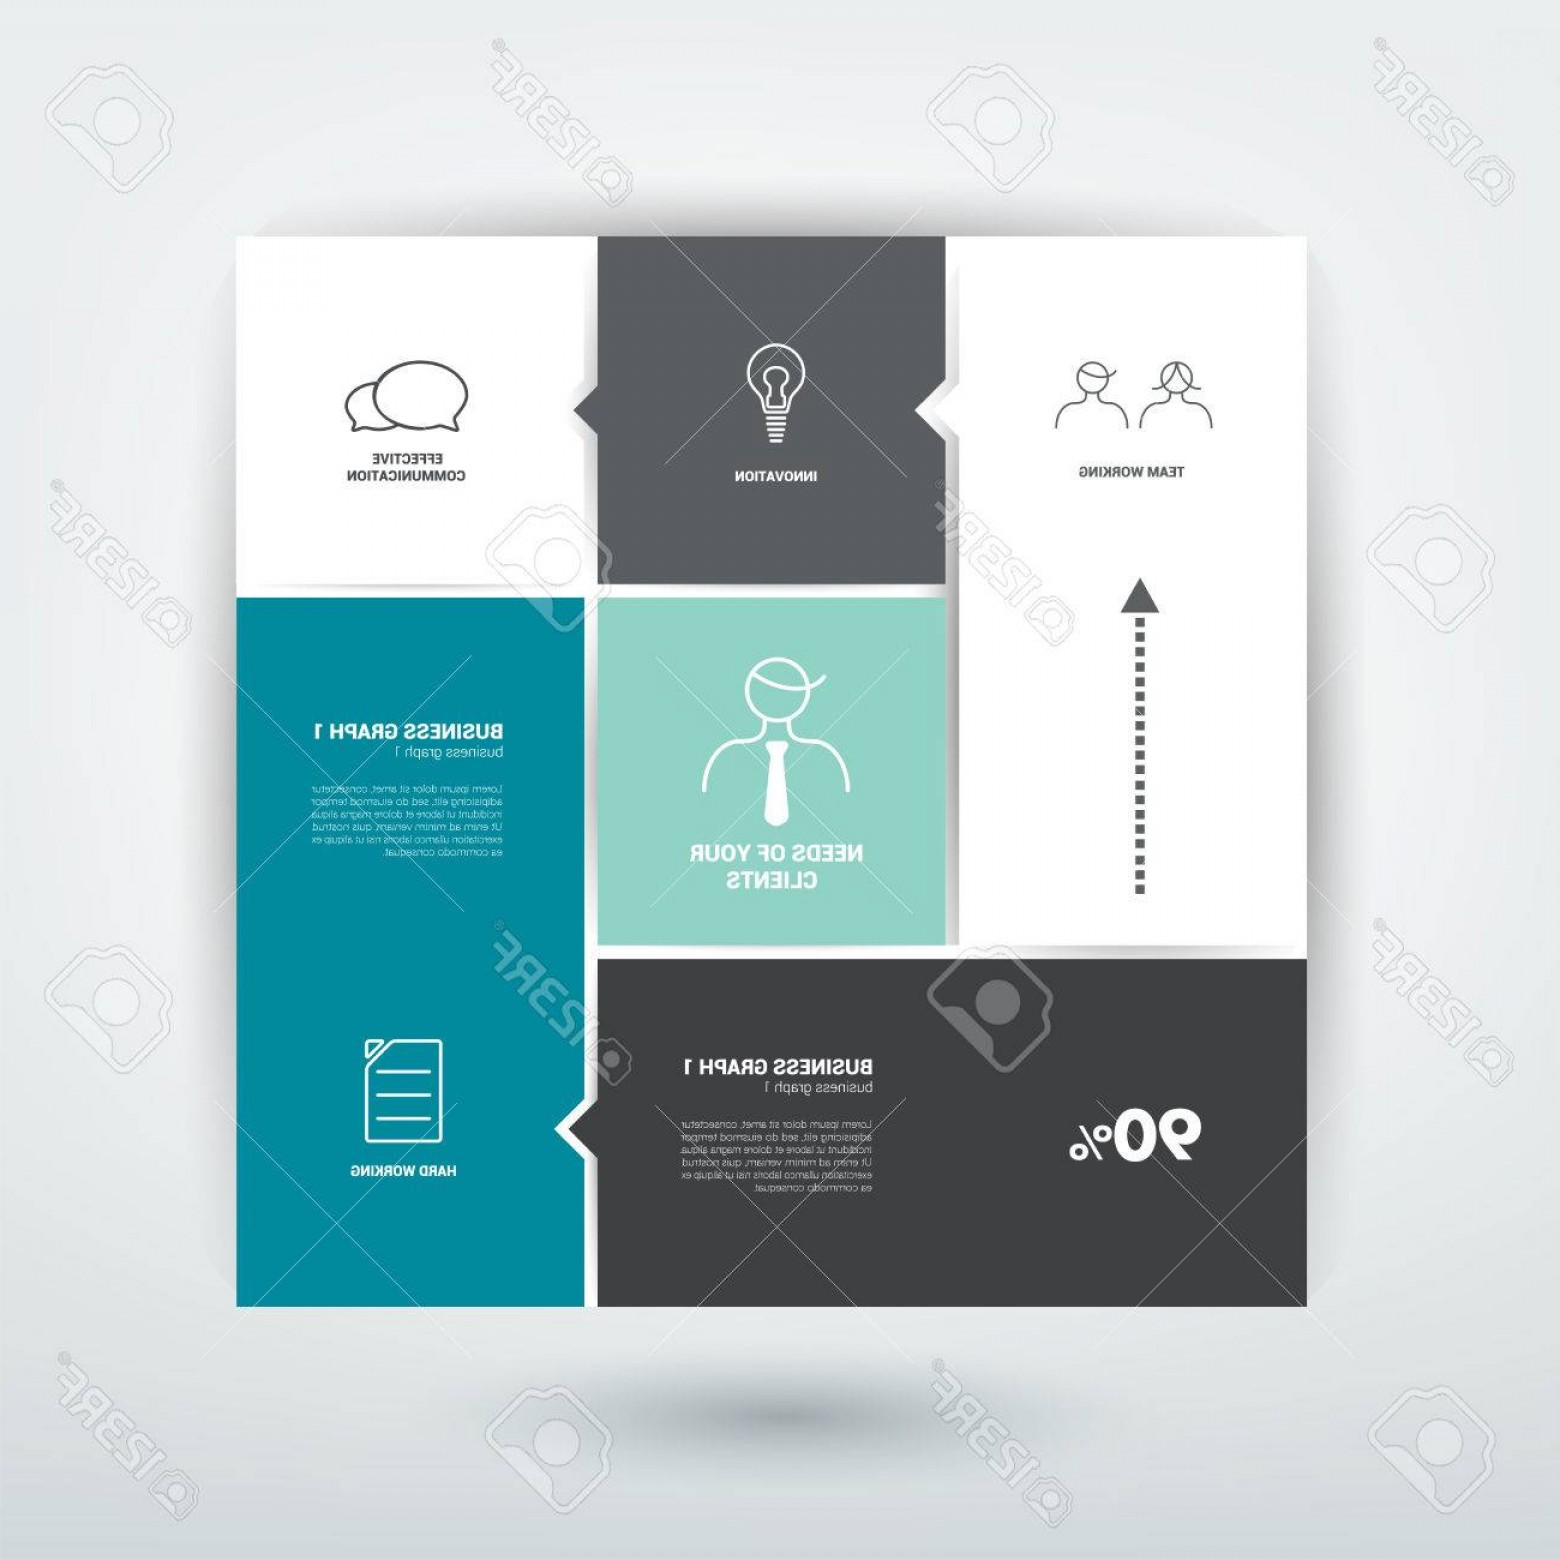 Folder Tab Vectors: Photostock Vector Minimalistic Flat Tab Diagram Scheme For Infographics Simply Editable Futuristic Design With Icons